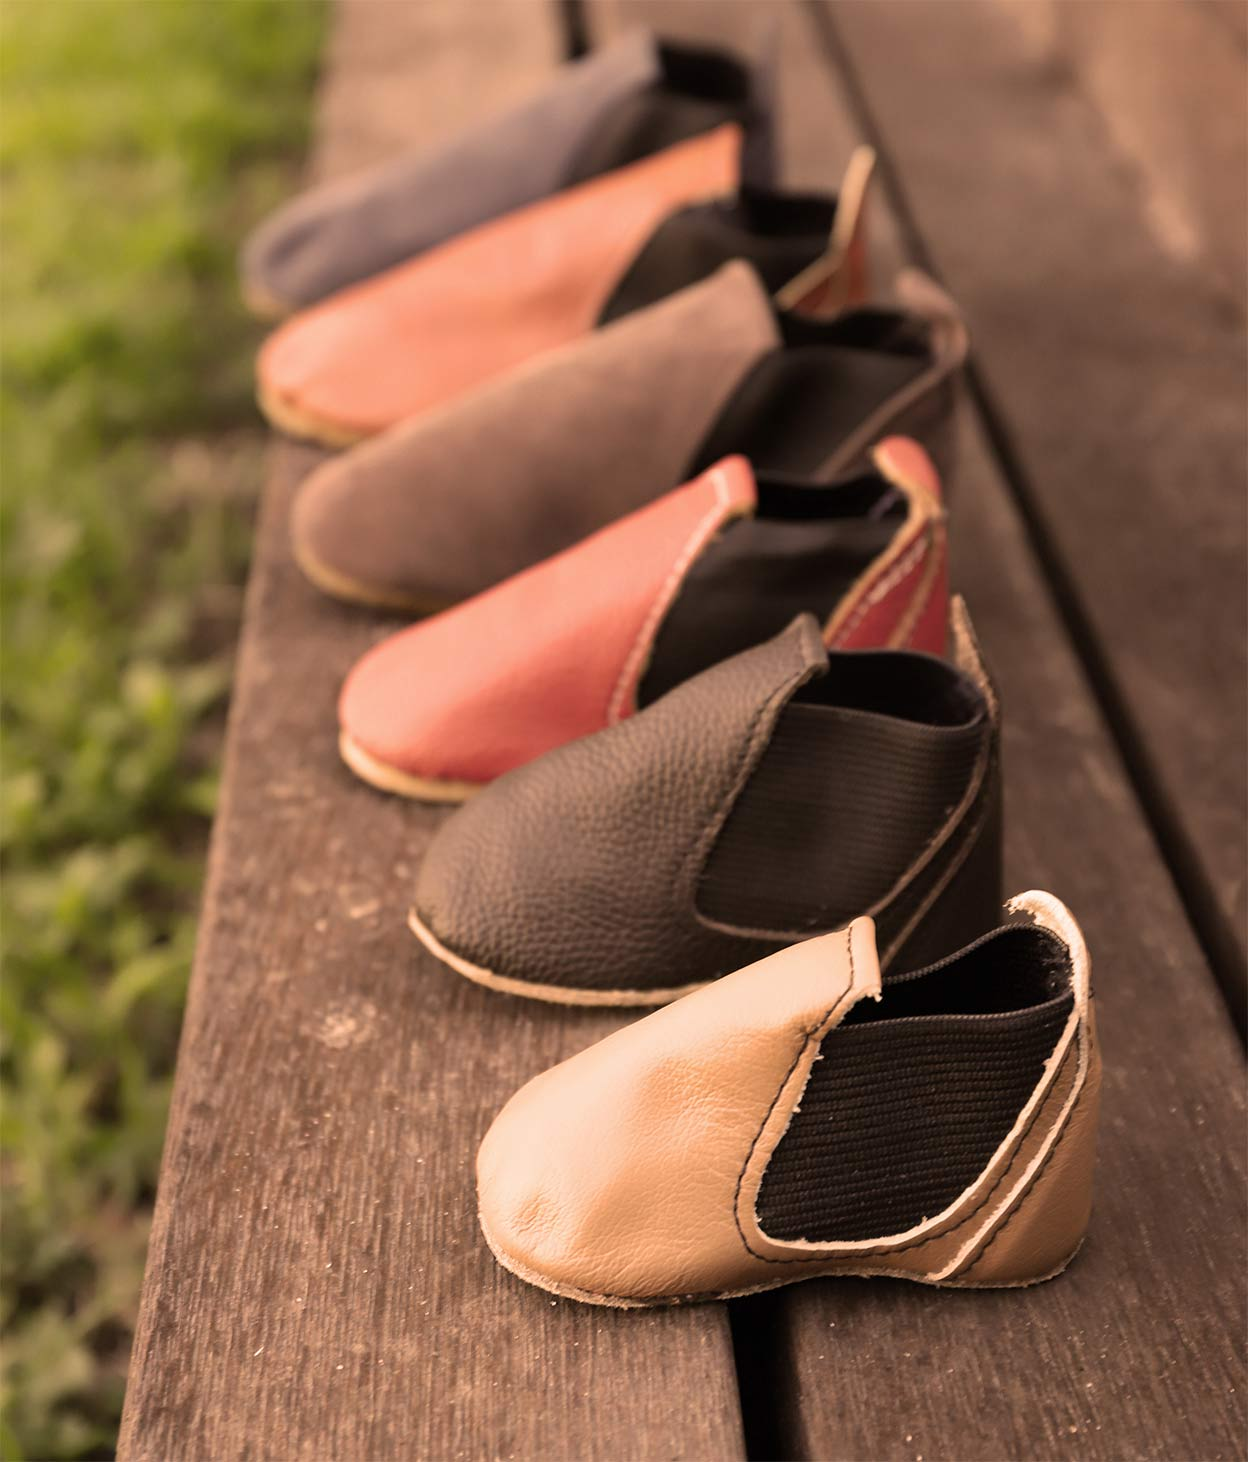 Pasito a pasito baby leather shoes australian made